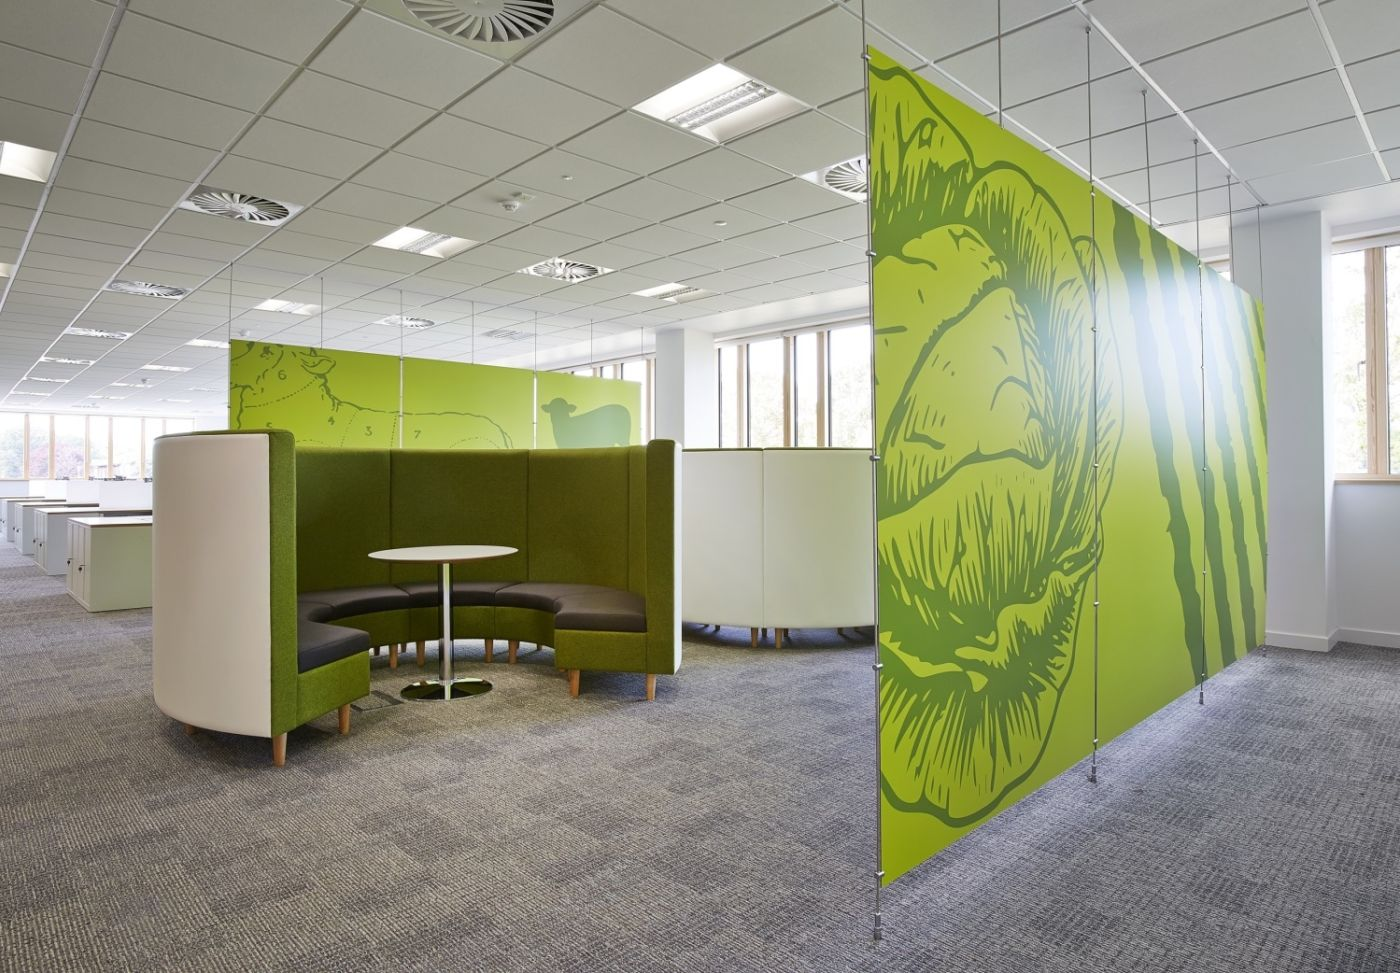 Bright green curved booths